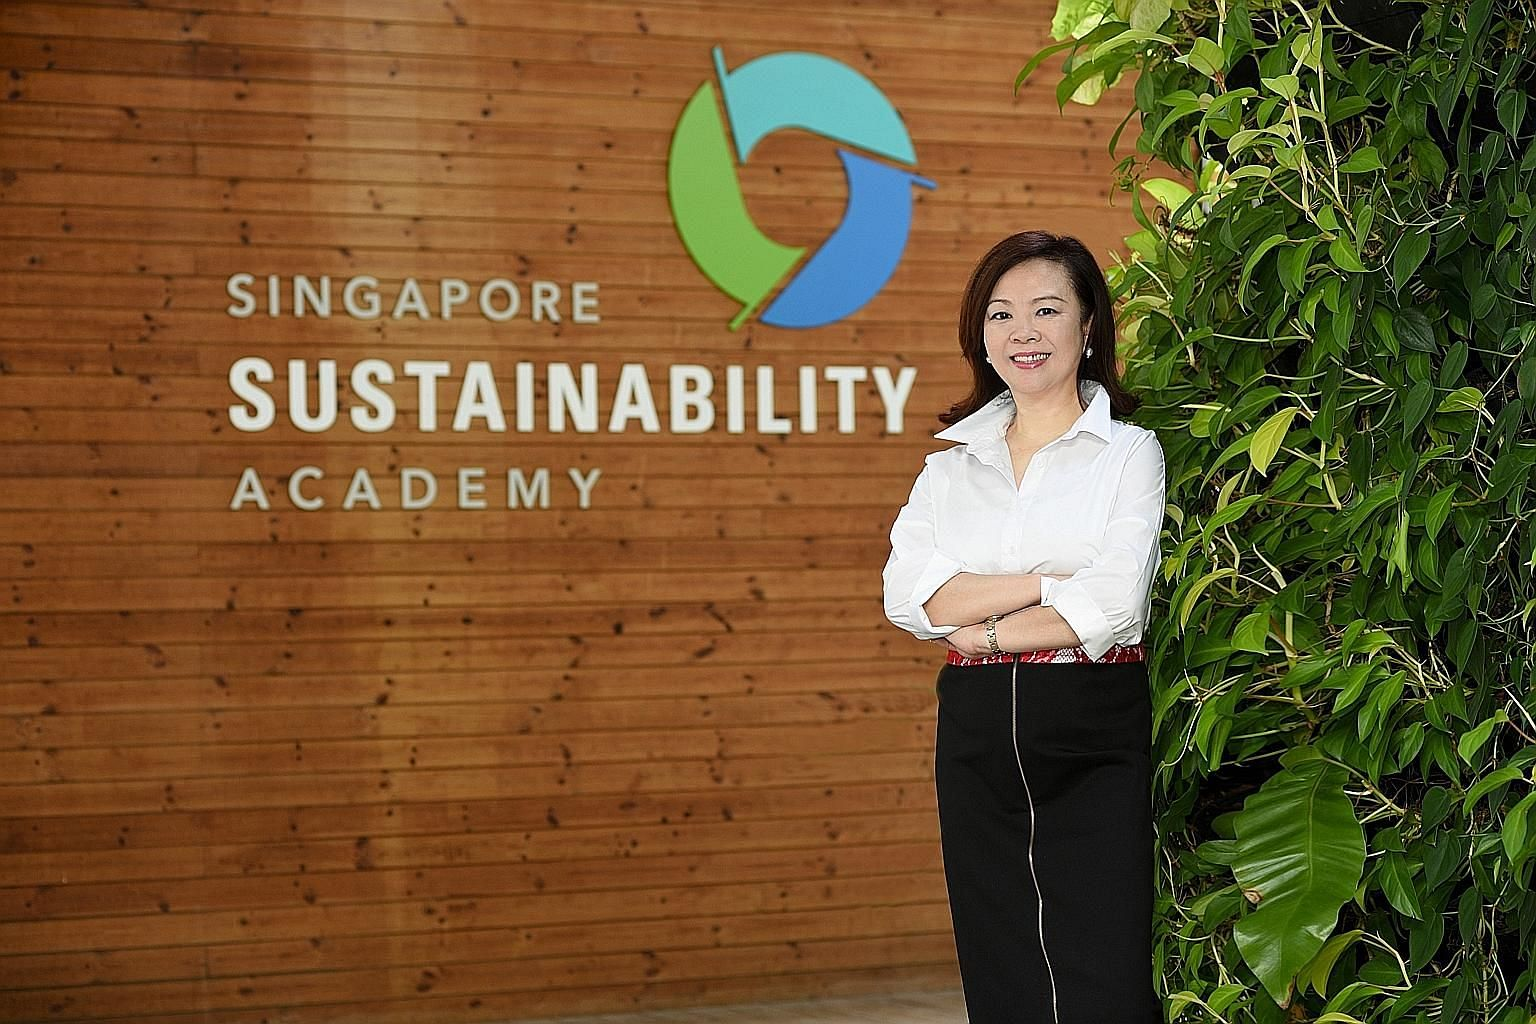 CDL chief sustainability officer Esther An is one of the first two South-east Asian women to be named a UN Global Compact Sustainable Development Goals Pioneer for Green Infrastructure and a Low-Carbon Economy.